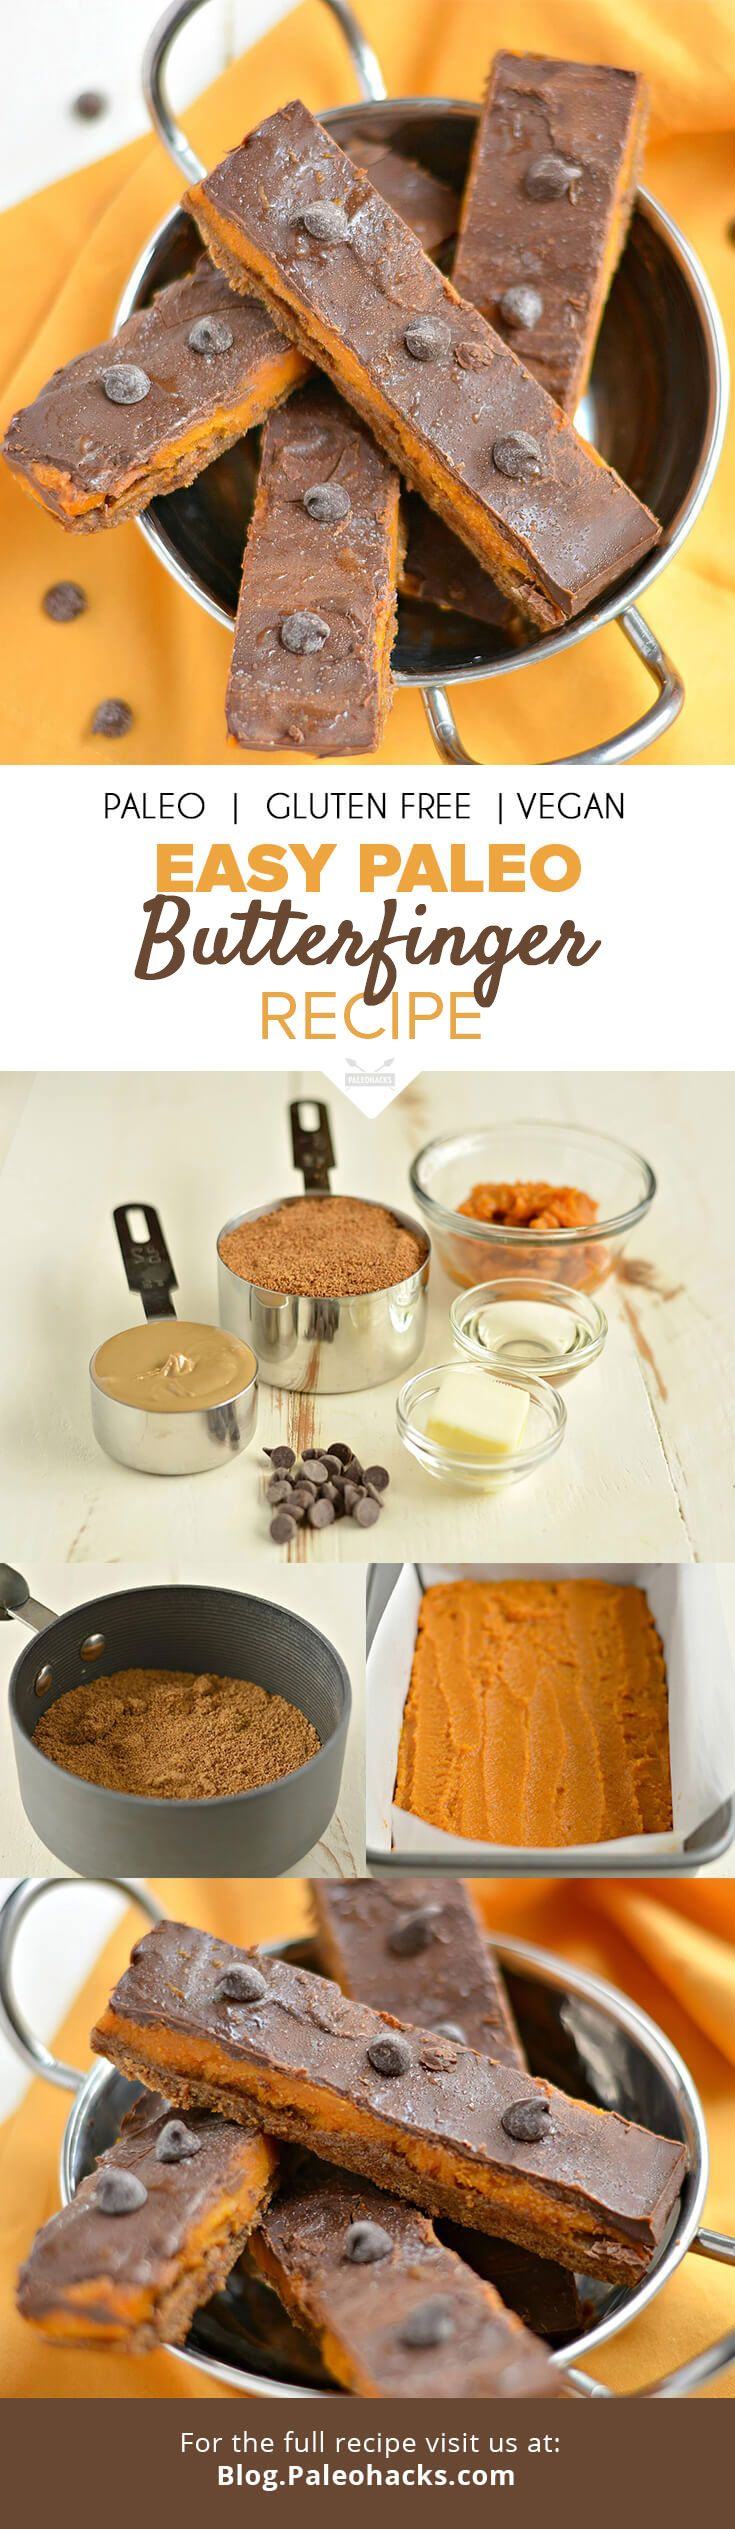 These sweet, buttery Paleo Butterfingers are made with just 7 ingredients and a surprise inside! A bite-sized treat reminiscent of your favorite candy bar that's gluten-, grain-, dairy- and refined sugar-free. Get the full recipe here: http://paleo.co/paleobutterfingers